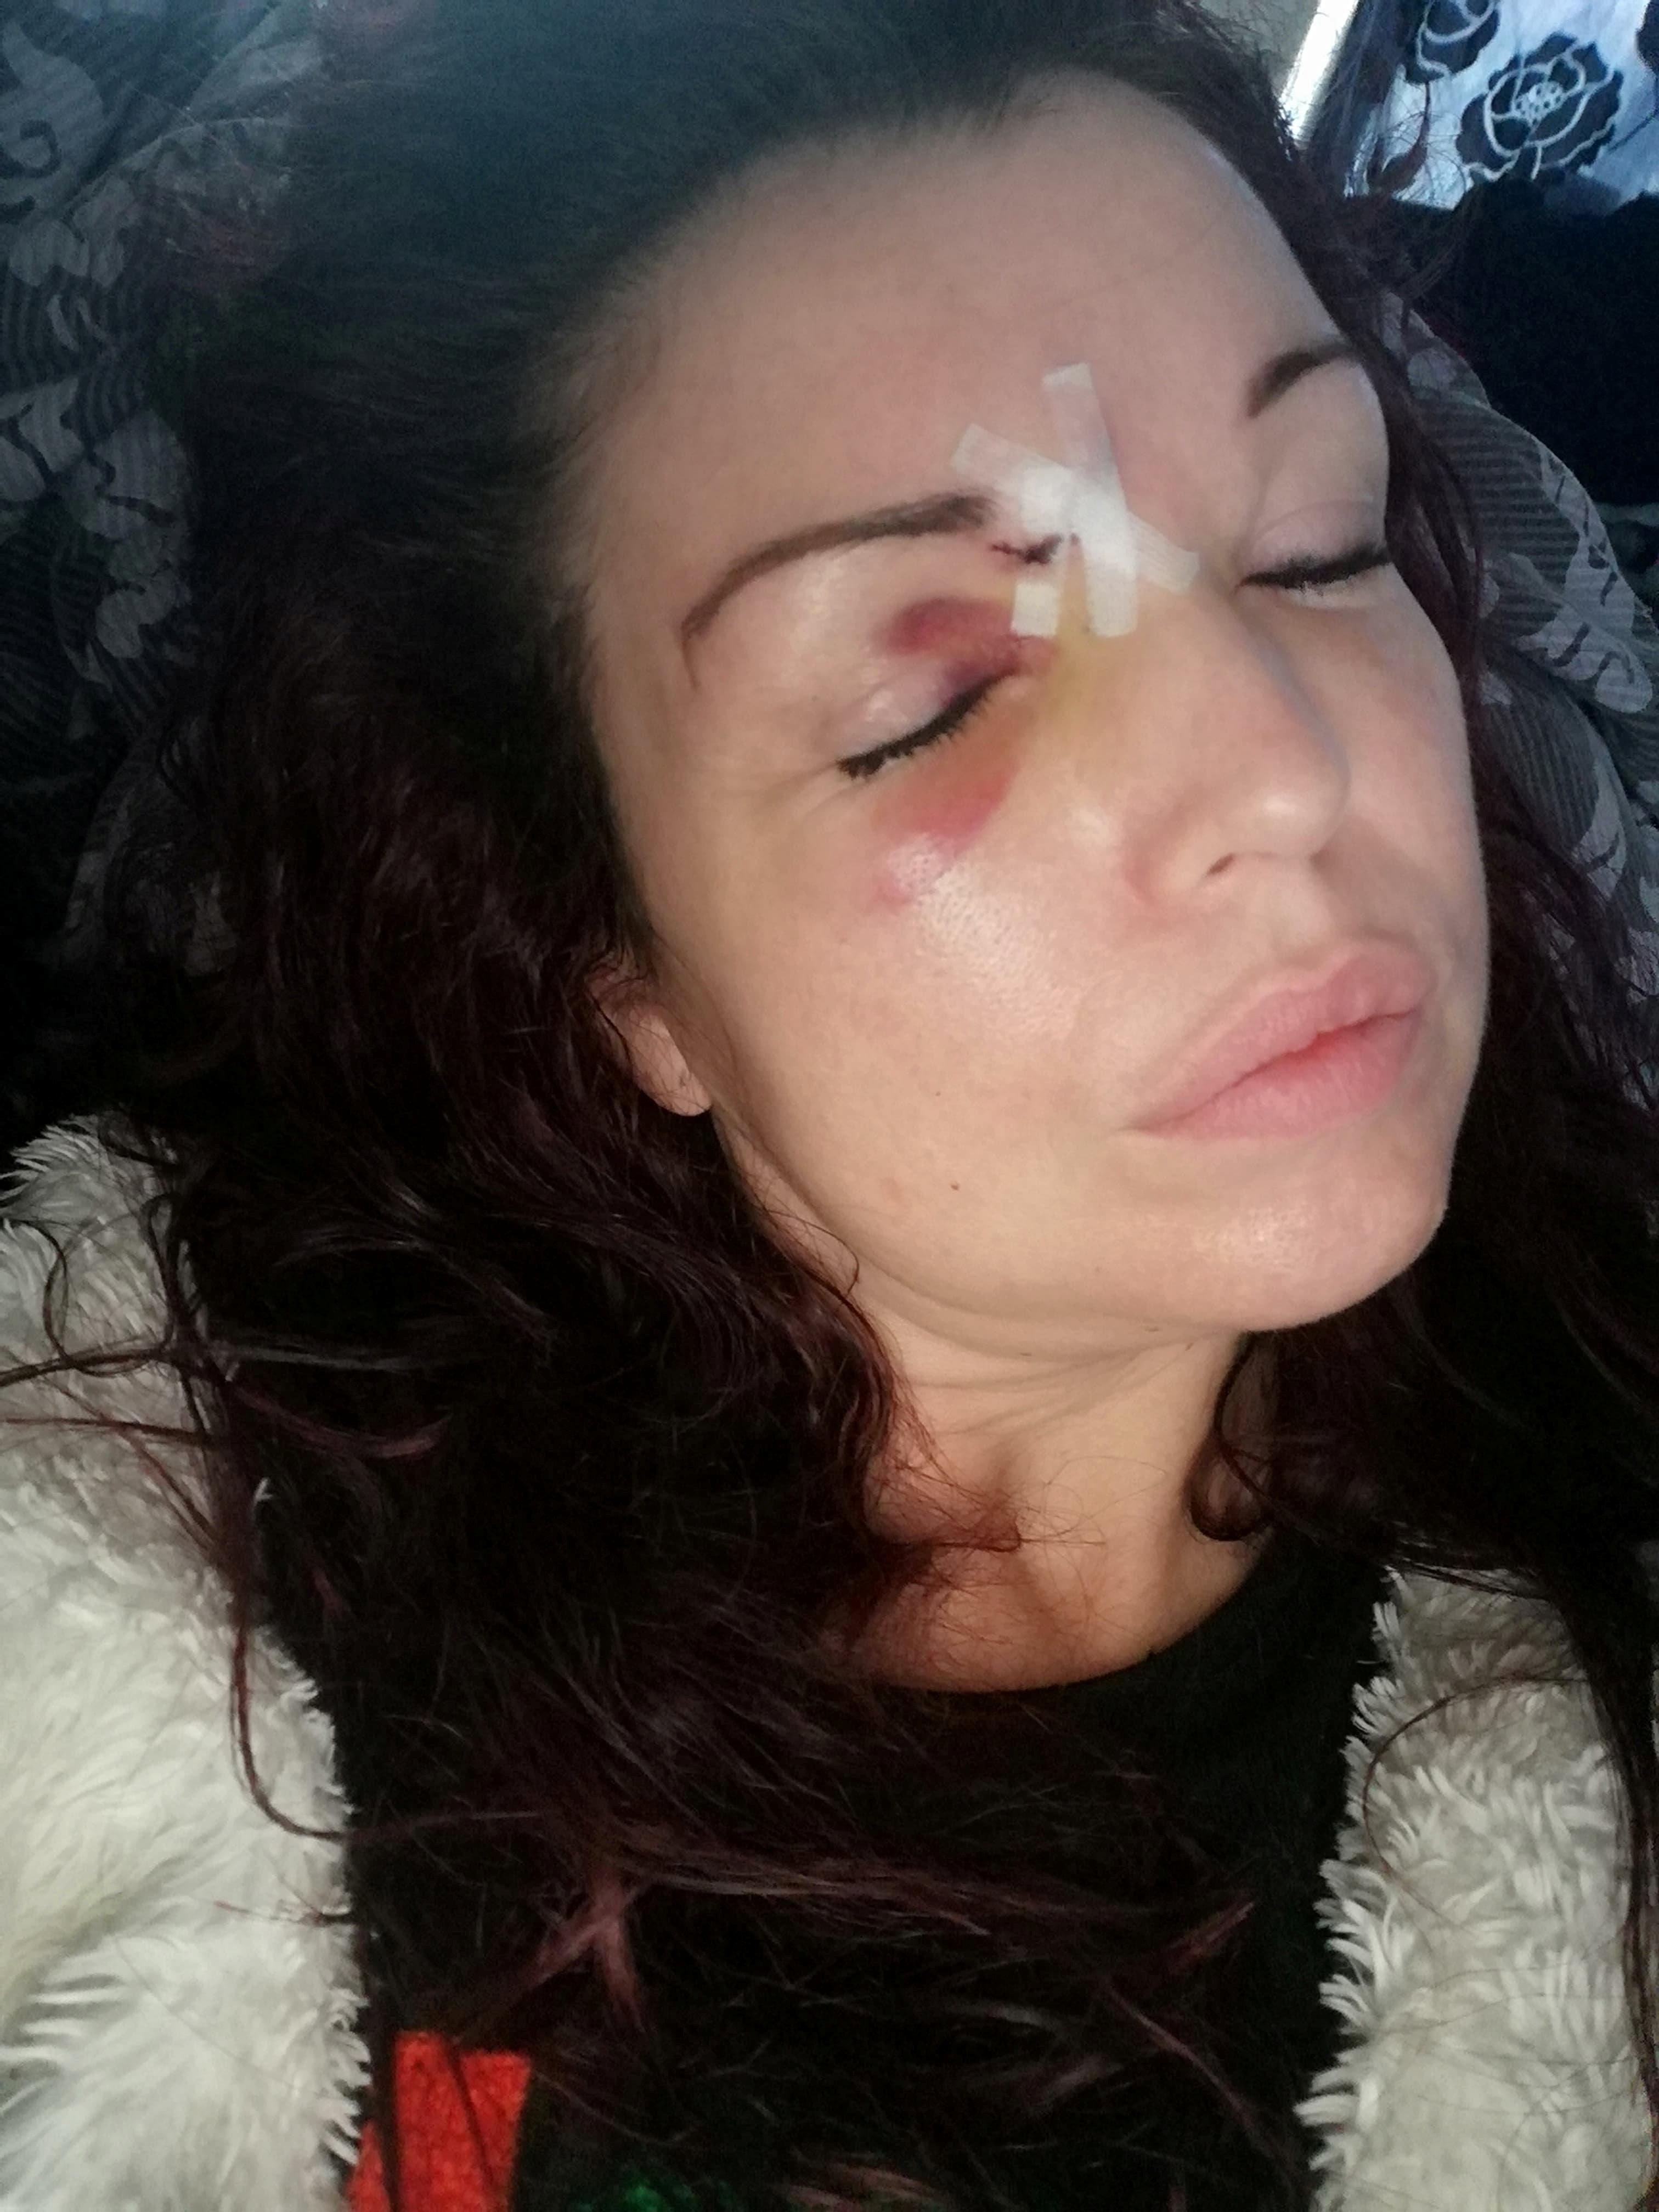 Mom says she nearly lost eye after Christmas present she bought son shot into face